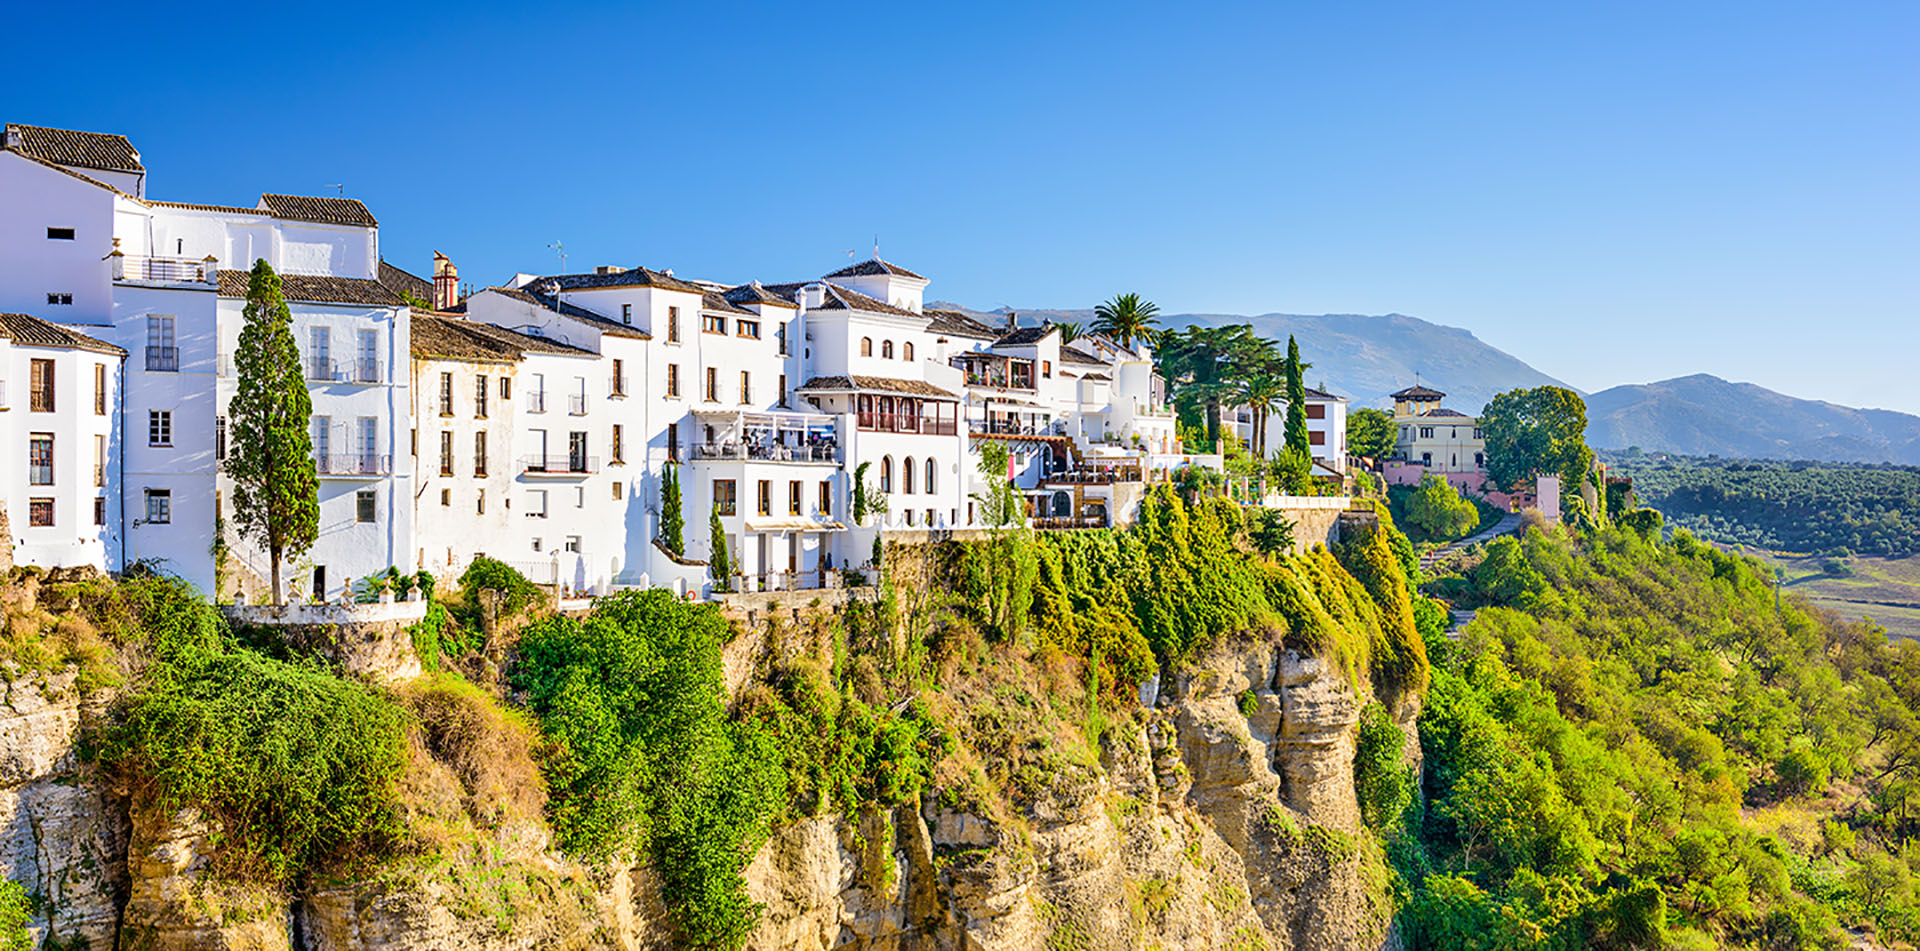 Village on Cliffs in Spain